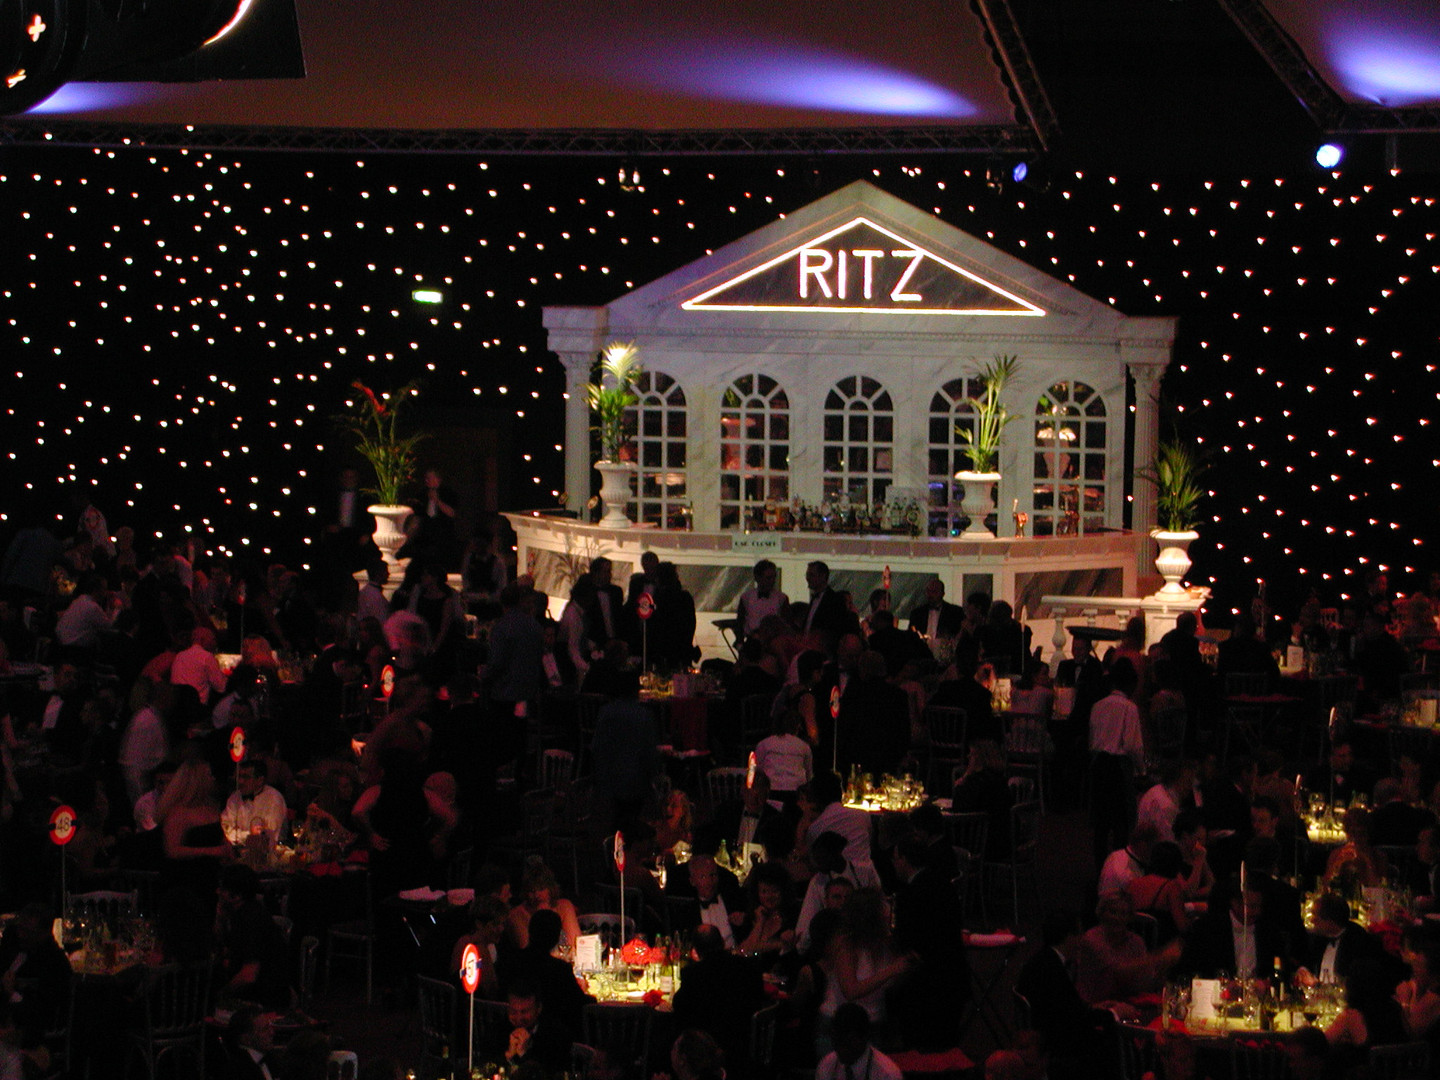 Ritz Hotel Entrance Prop Hire - Staging Services